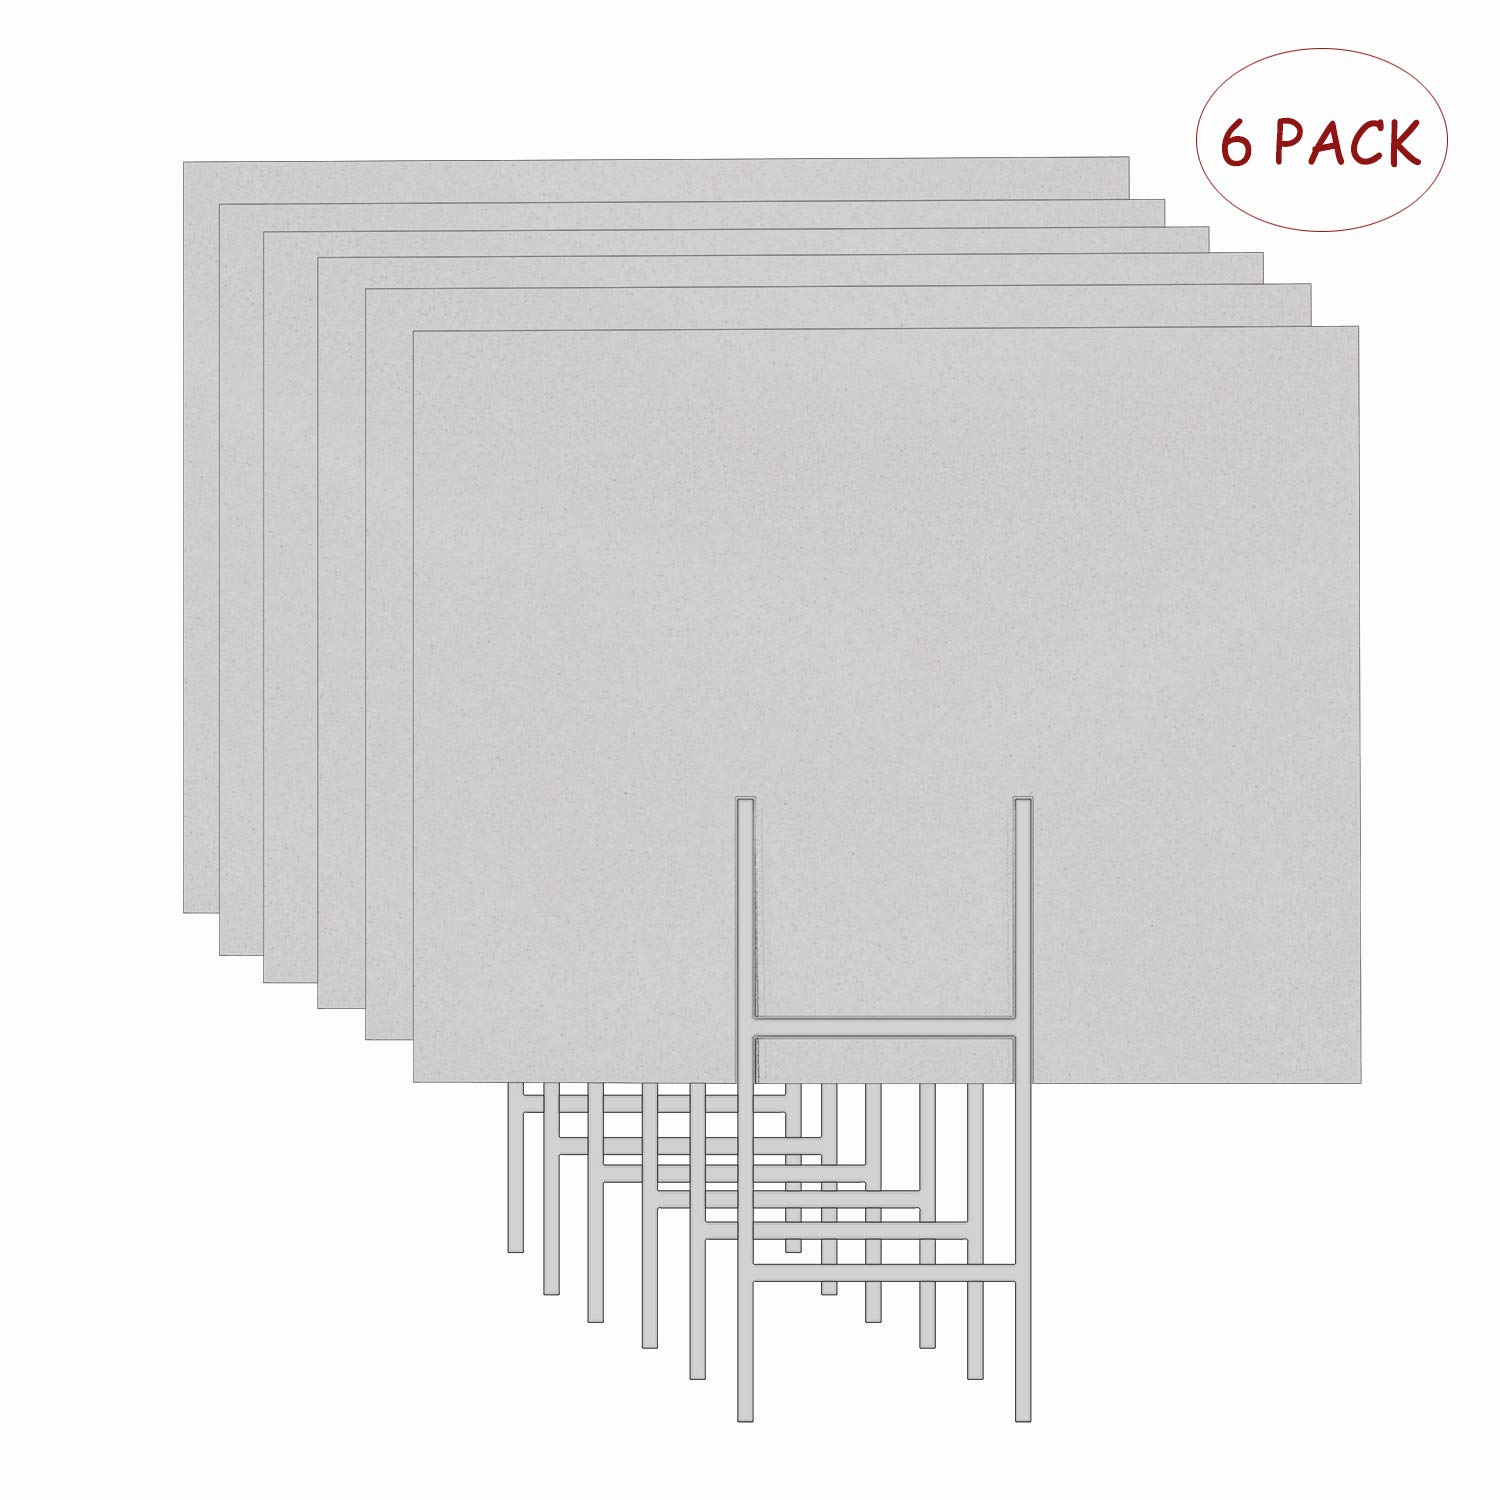 Amazon com mejor conocido 6 pack 24x18 white blank lawn yard signs corrugated plastic sheet with durable h stakes opening business garage rent